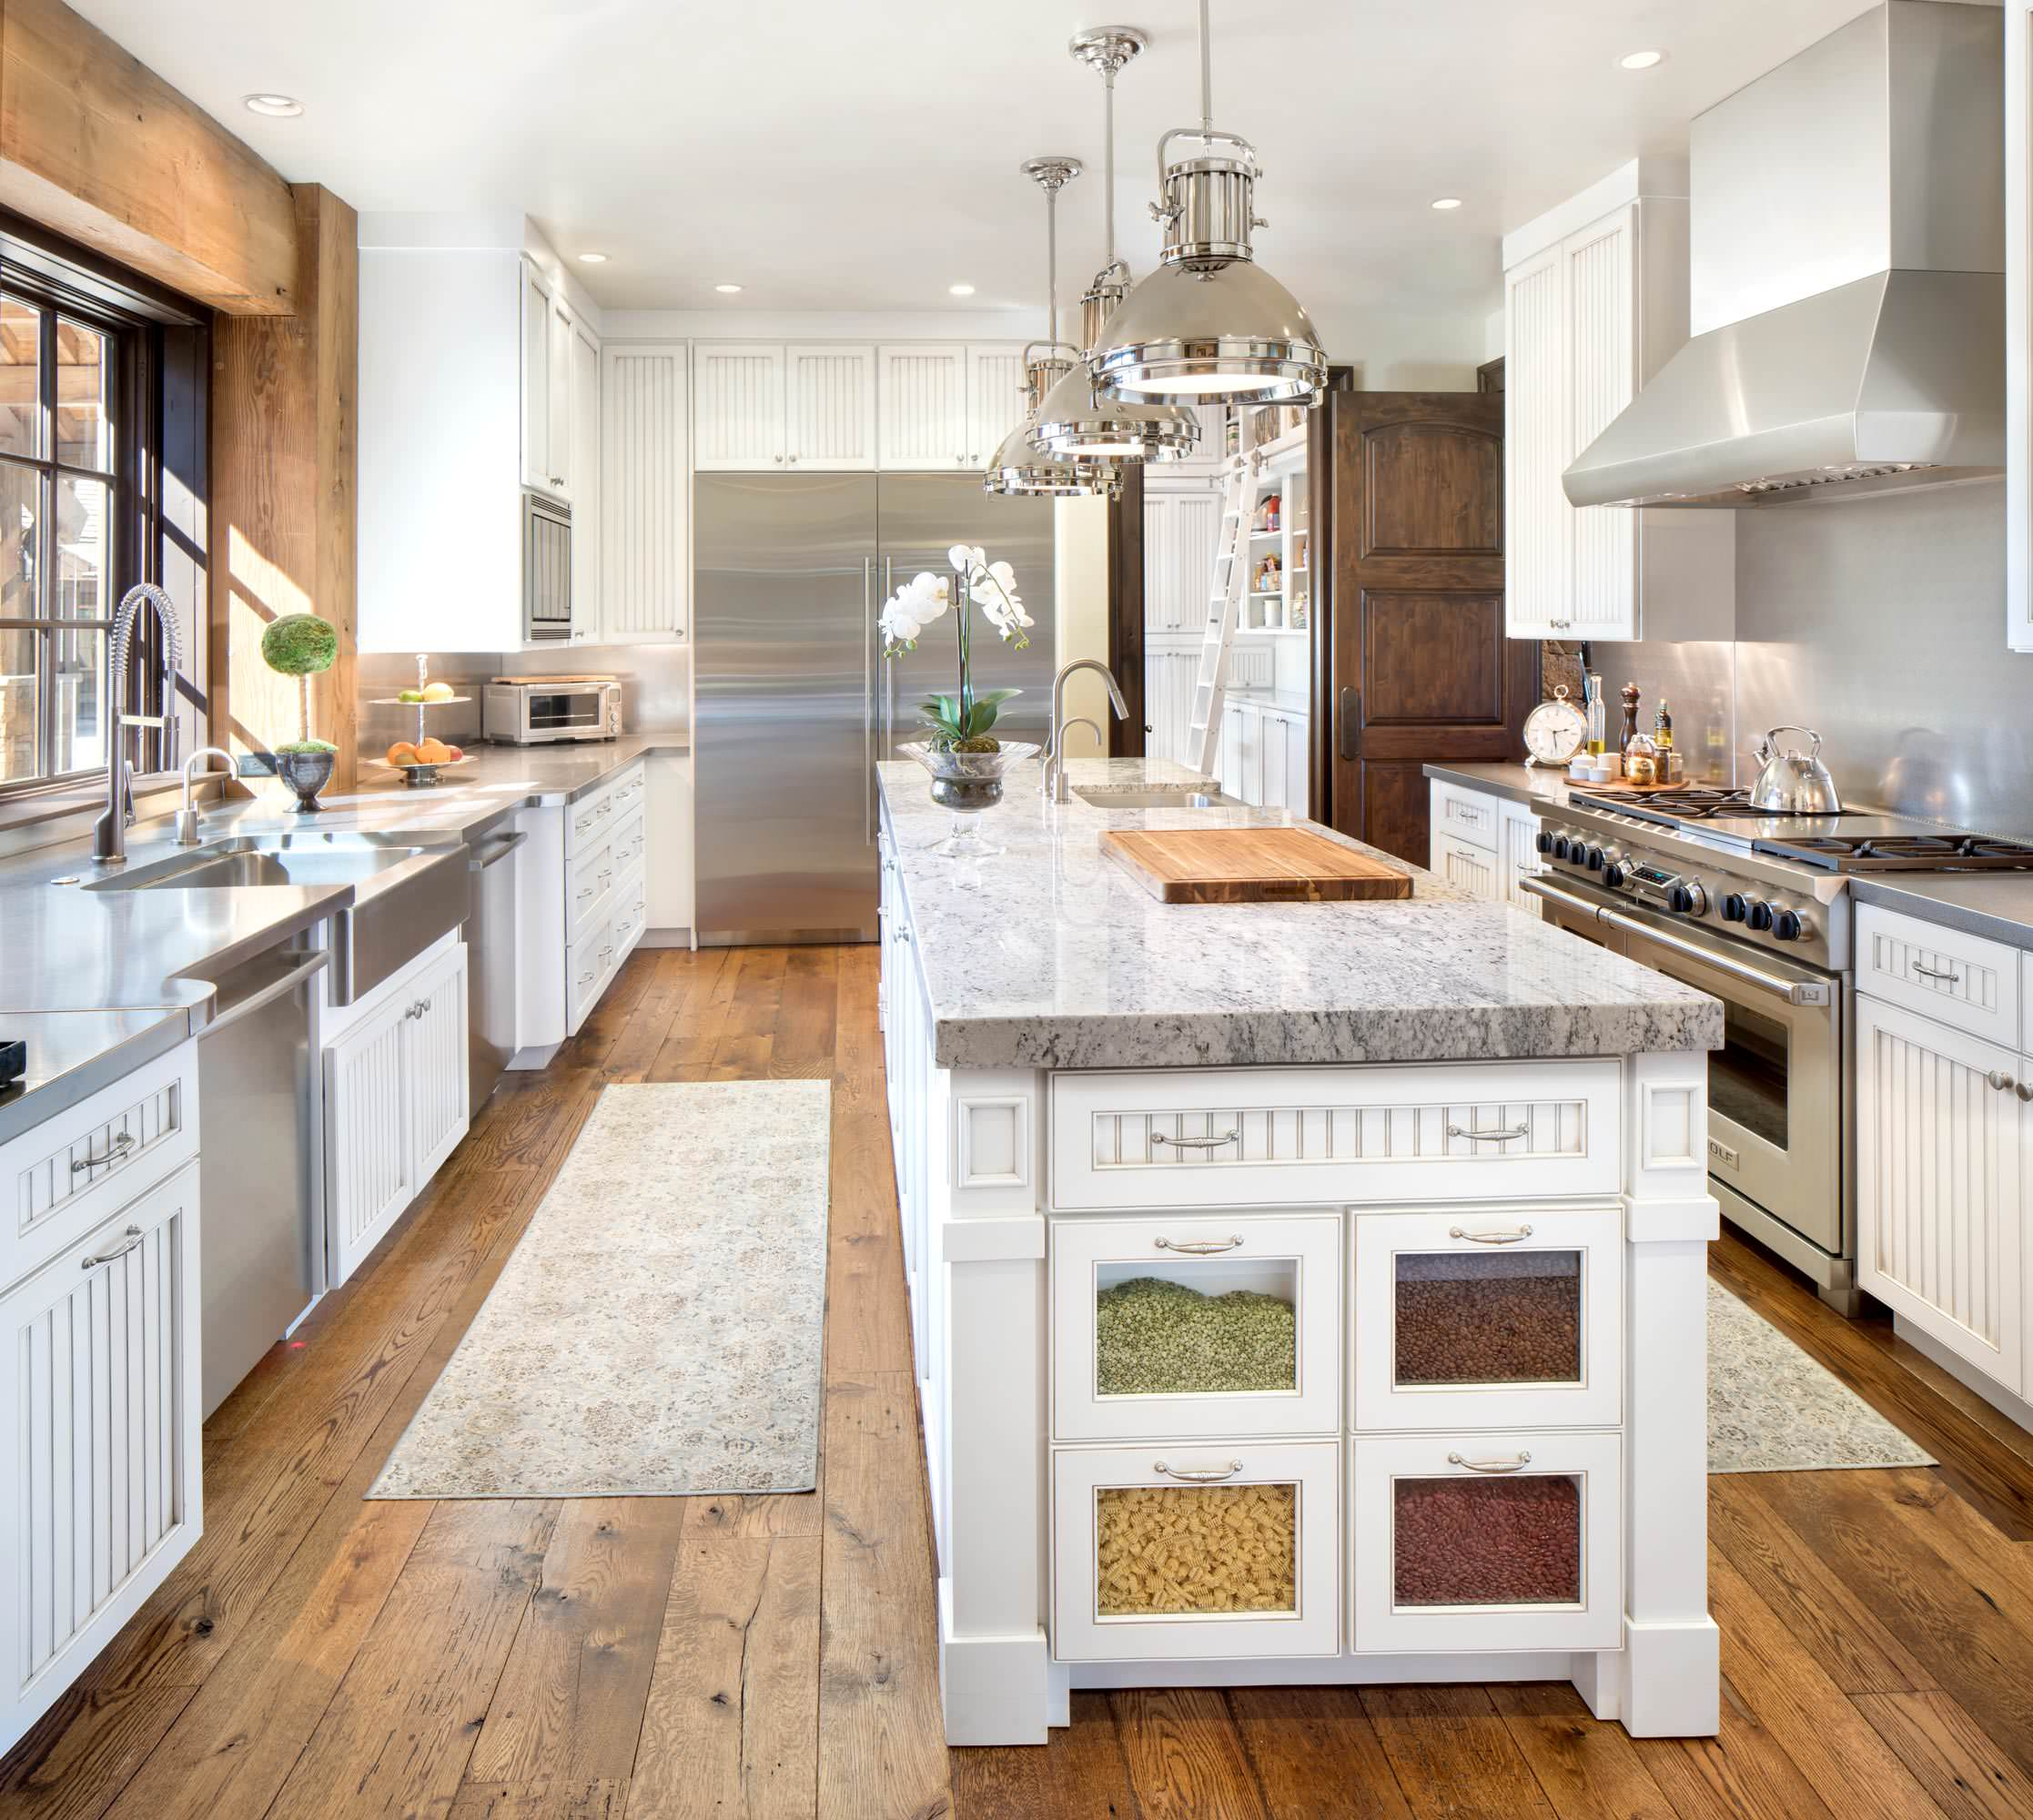 75 Beautiful Rustic Home Design Houzz Pictures Ideas February 2021 Houzz